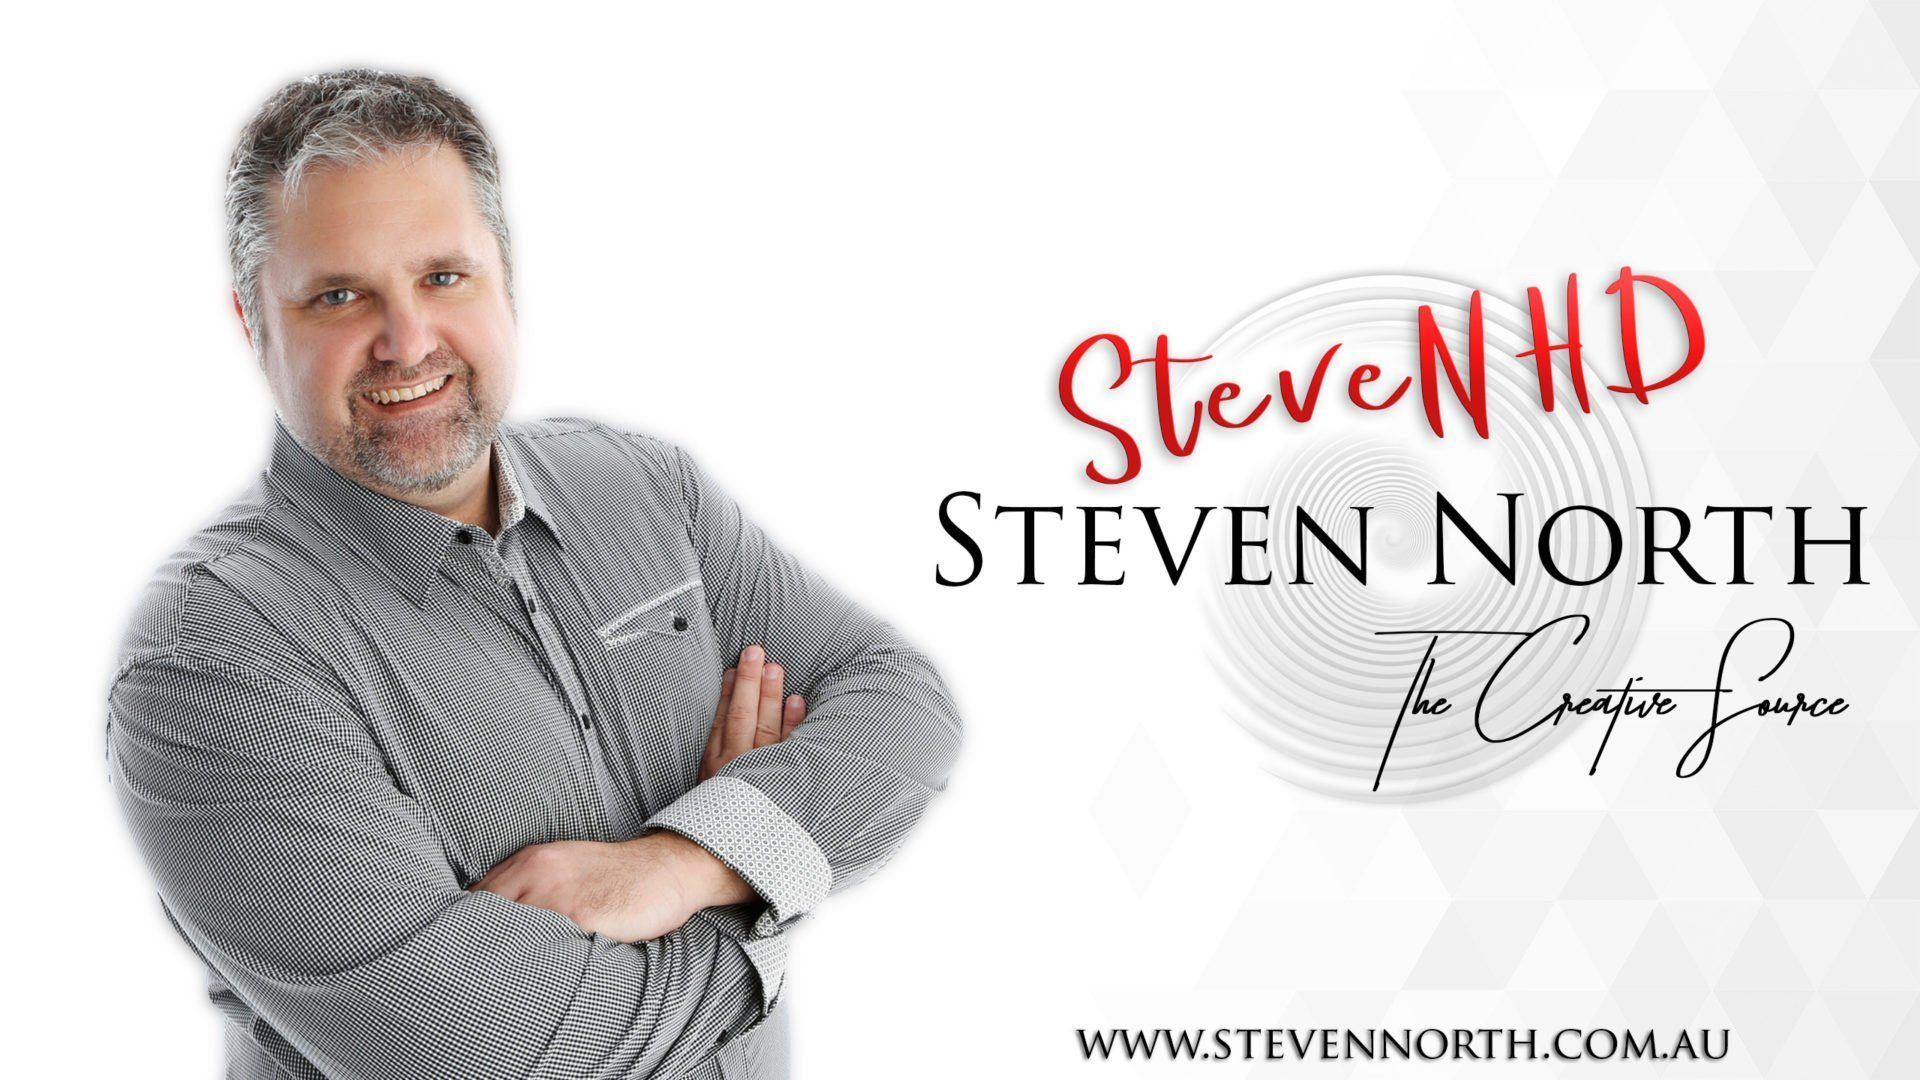 SteveNHD with Steven North